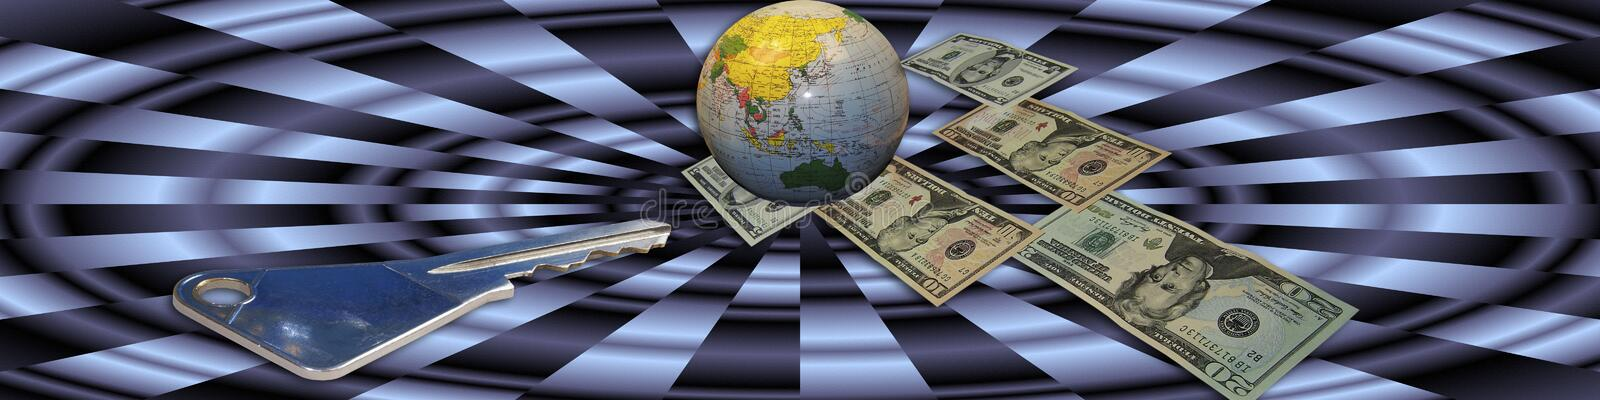 Key to financial success. Banner with the globe as a central point. The money and key are metaphors and leading to the title: Key to financial success vector illustration